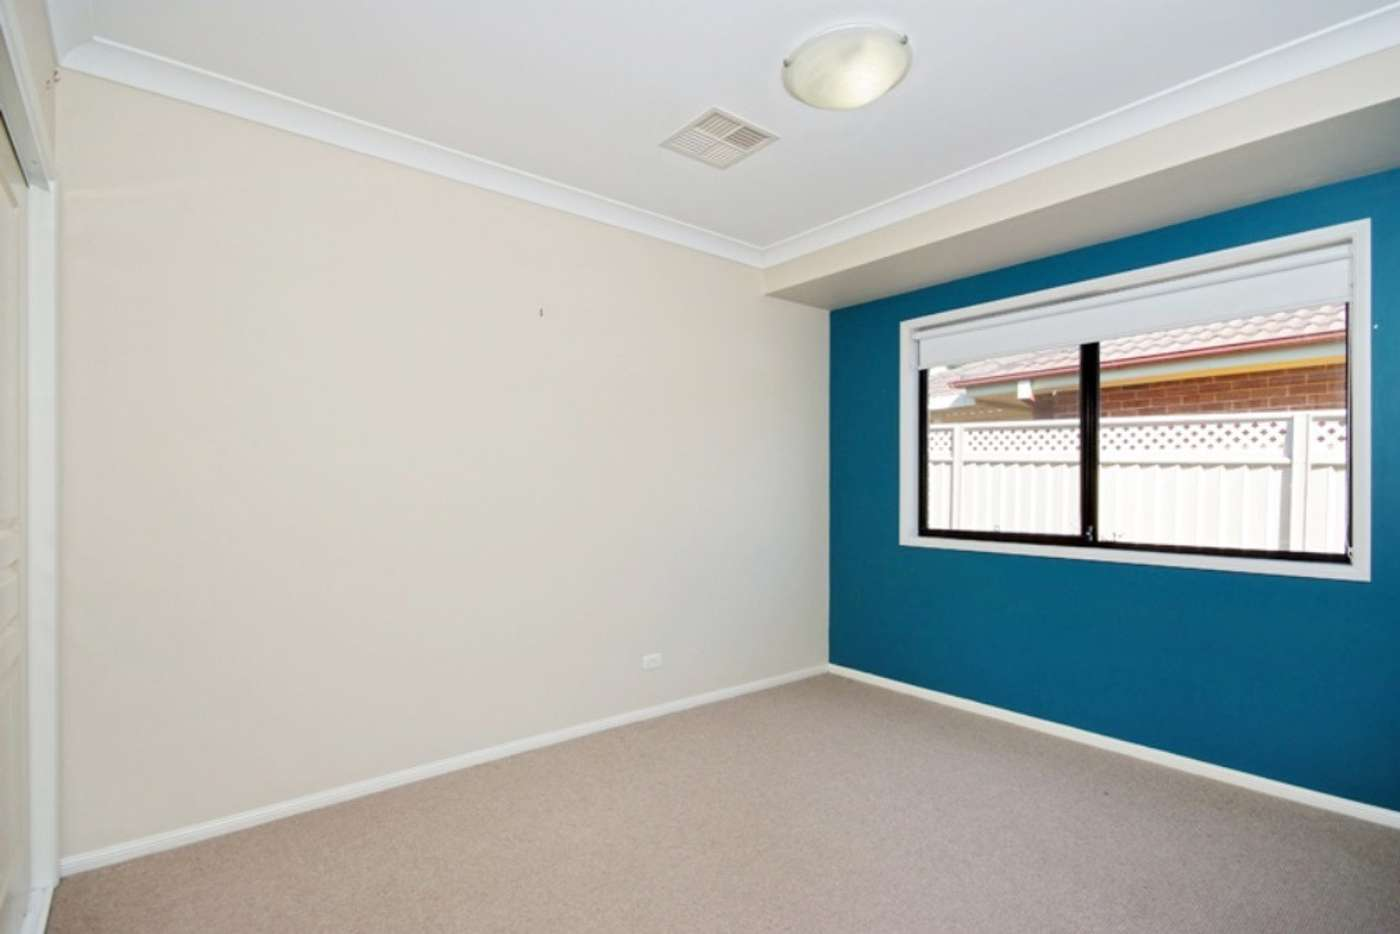 Seventh view of Homely house listing, 73 Yorston Street, Warners Bay NSW 2282